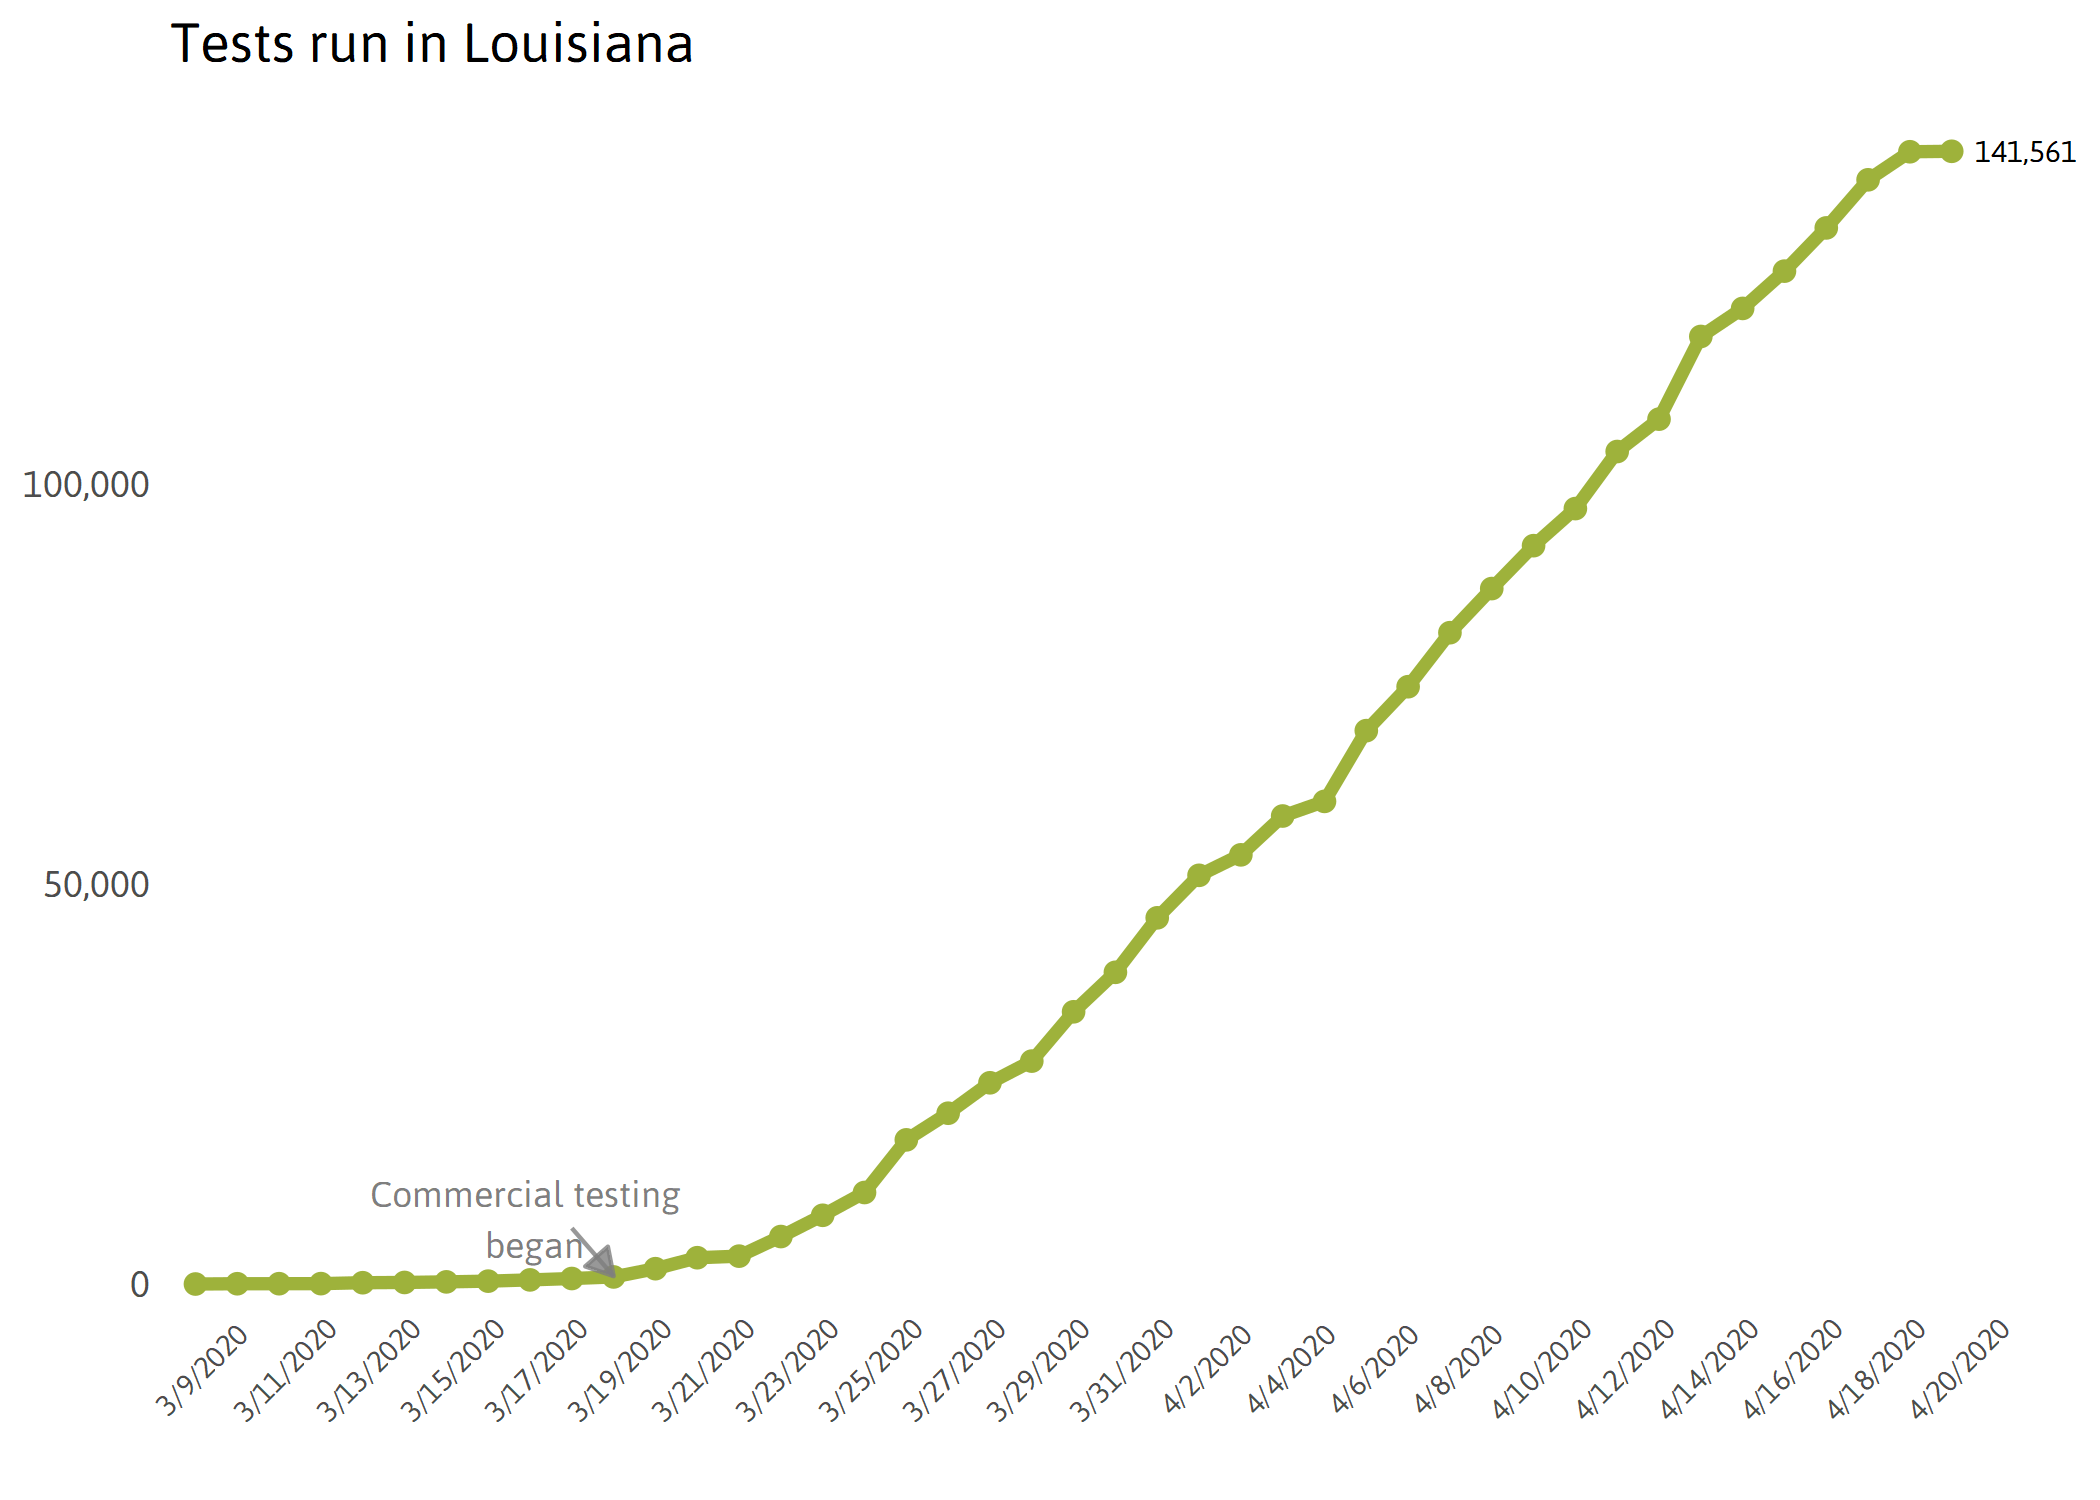 Louisiana Tests Chart